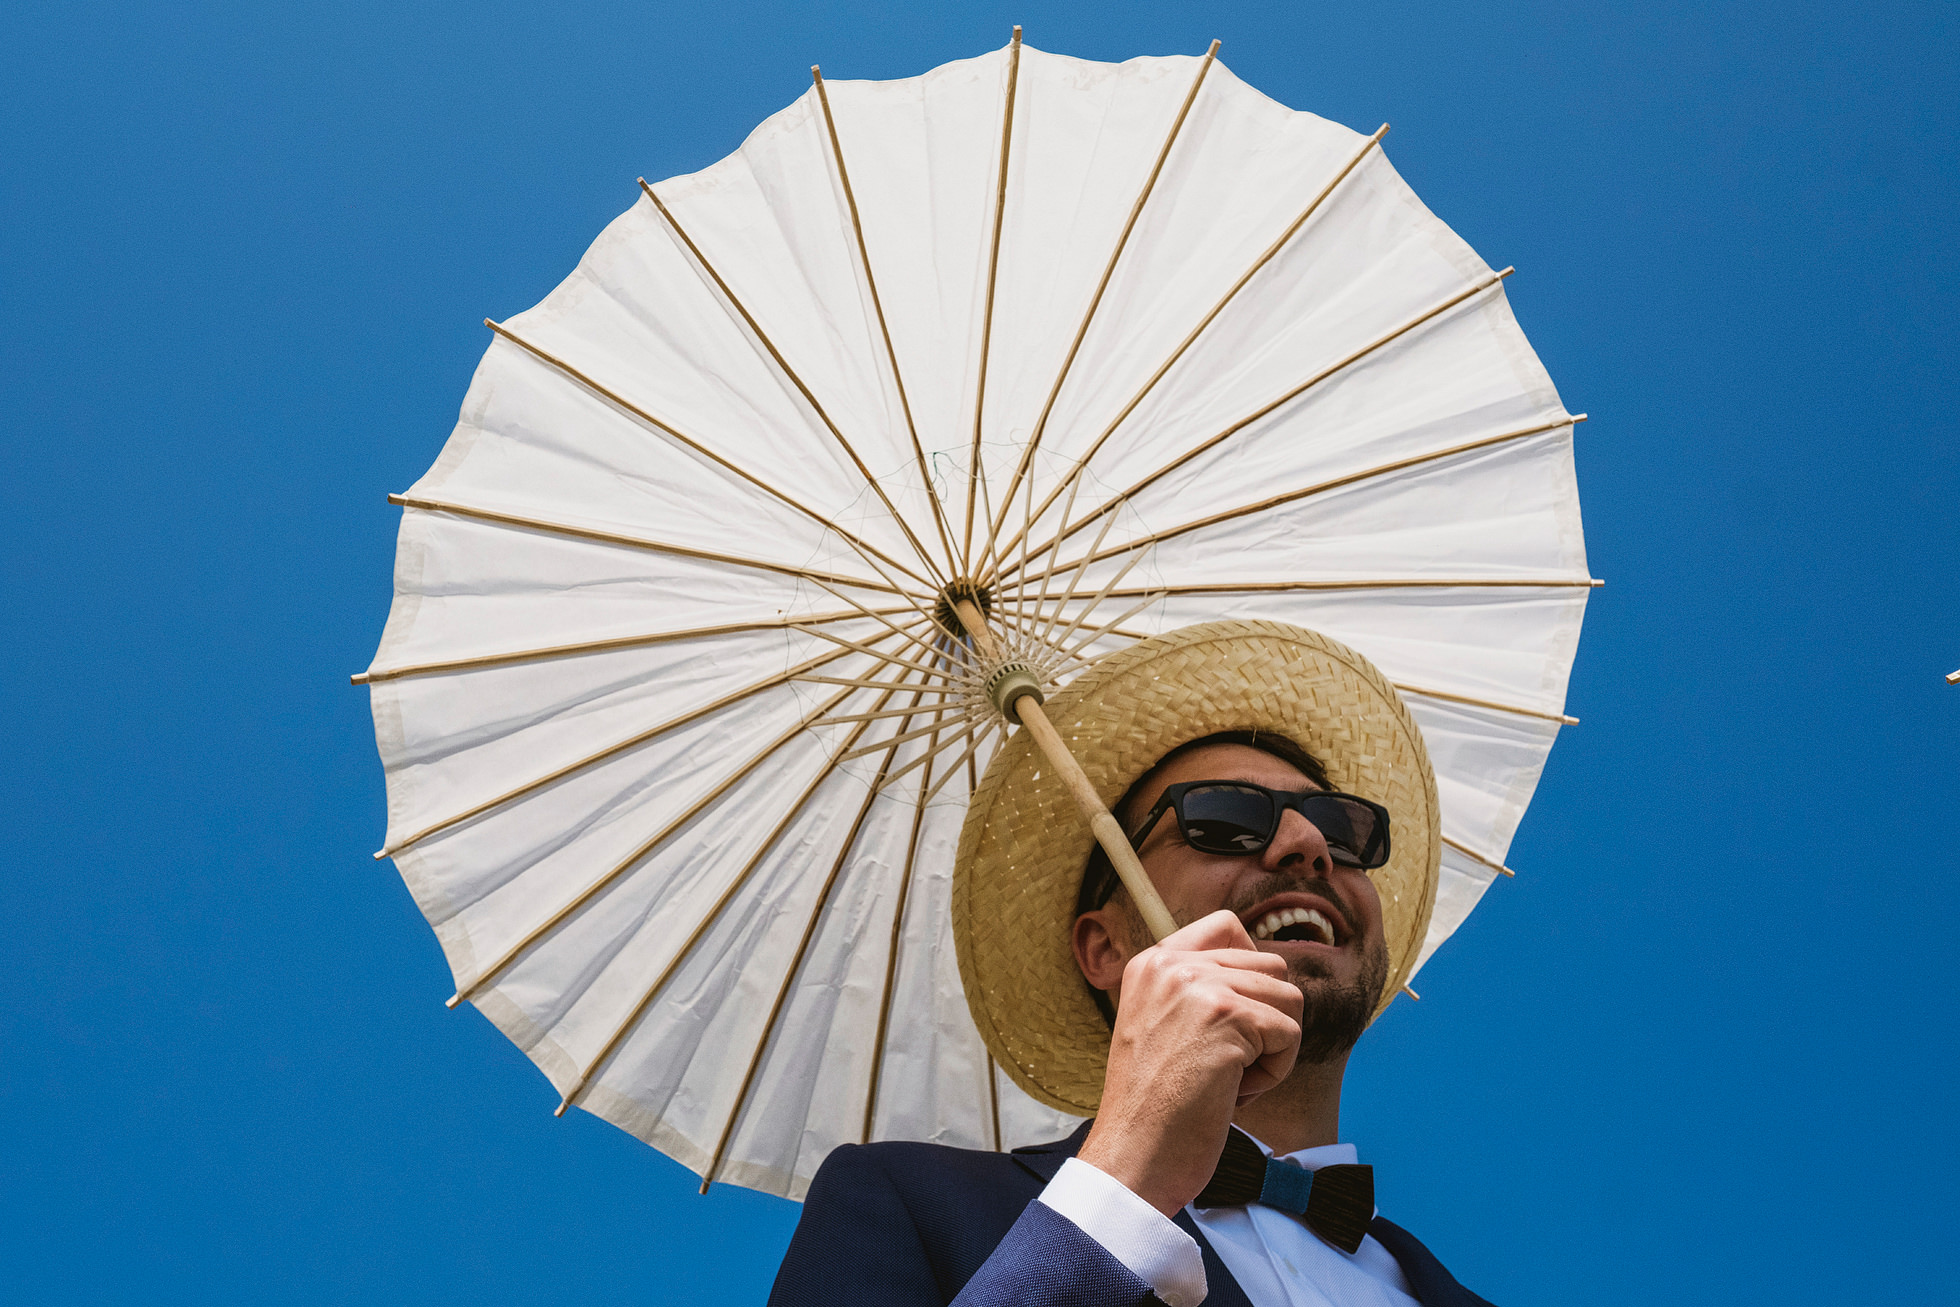 Polish groomsman with sun umbrella